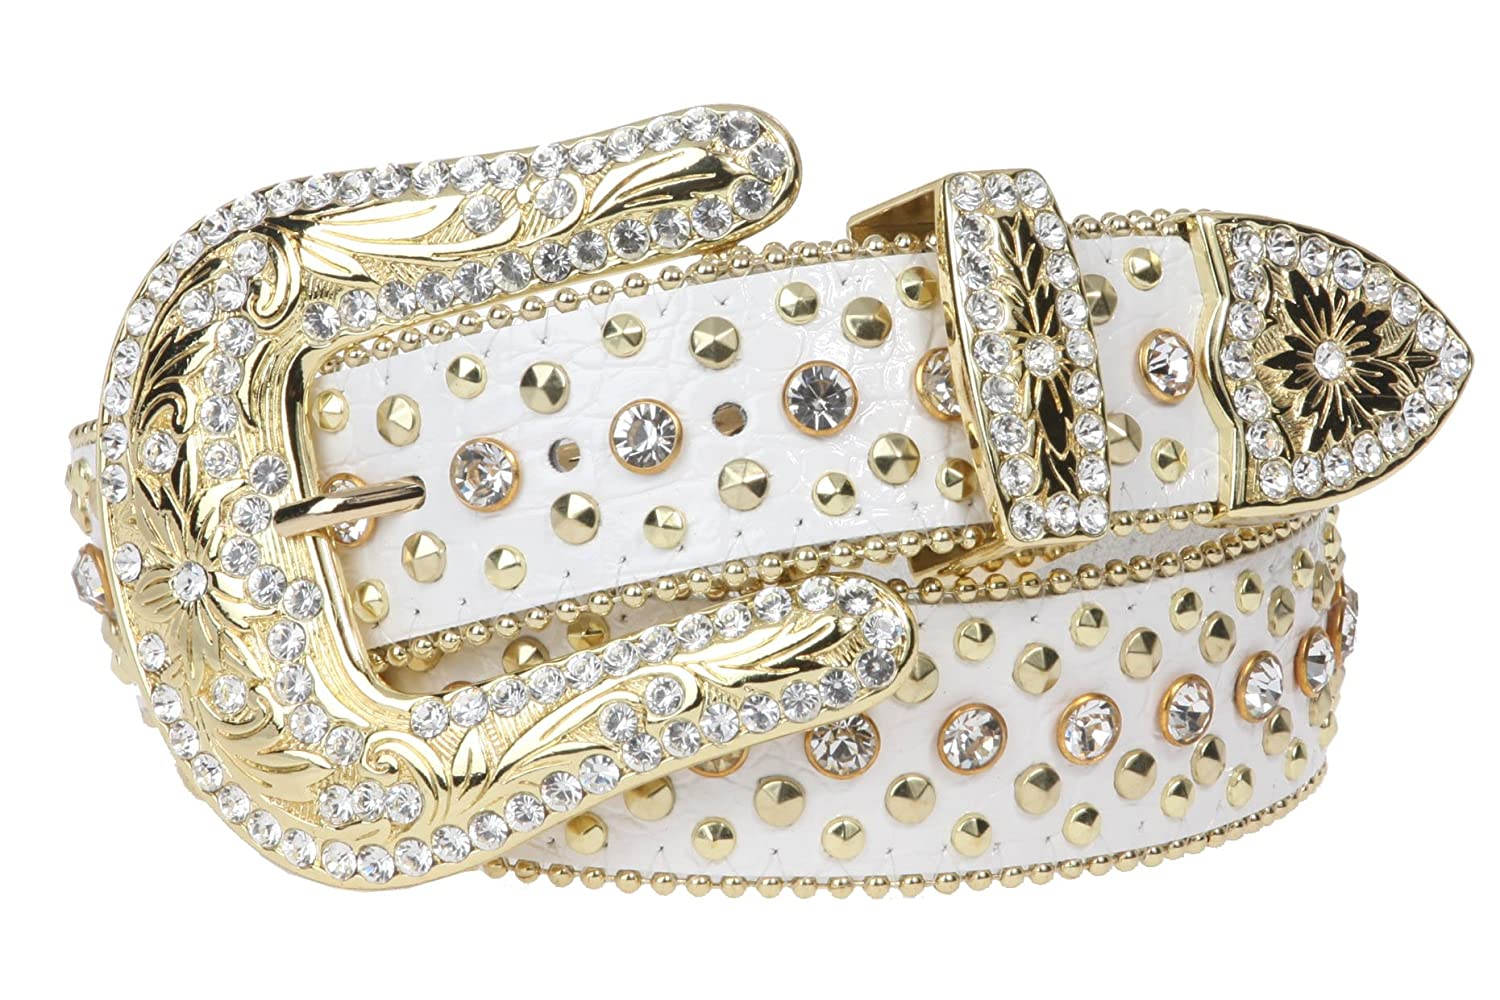 Snap On Western Cowgirl Alligator Rhinestone Studded Leather Belt Size: S/M - 34 Color: Brown K6005:011G:A008